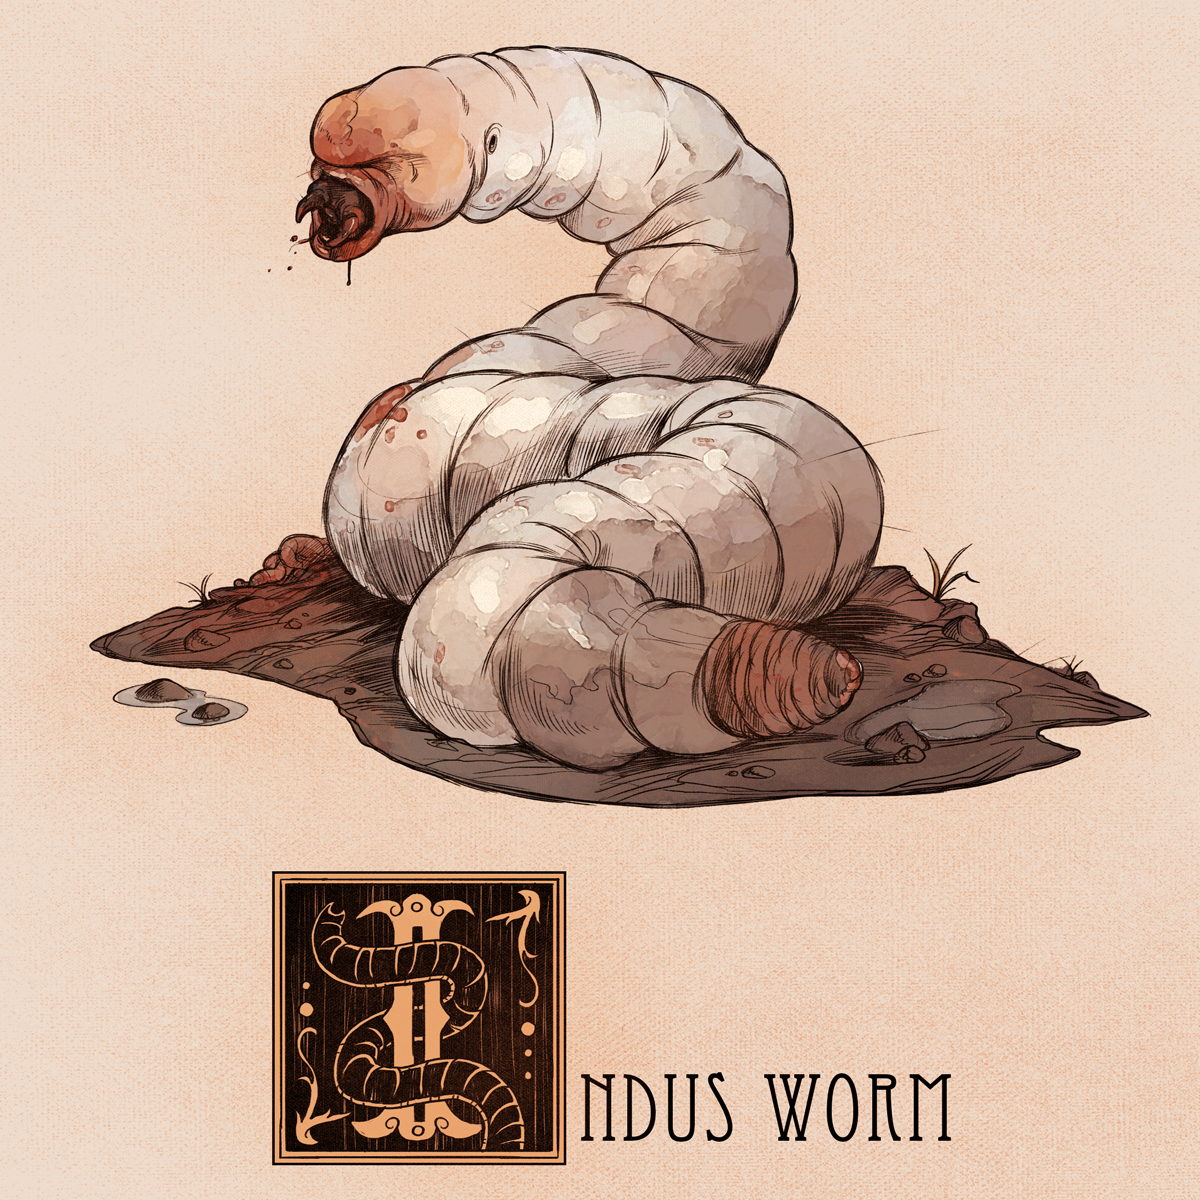 I is for Indus Worm